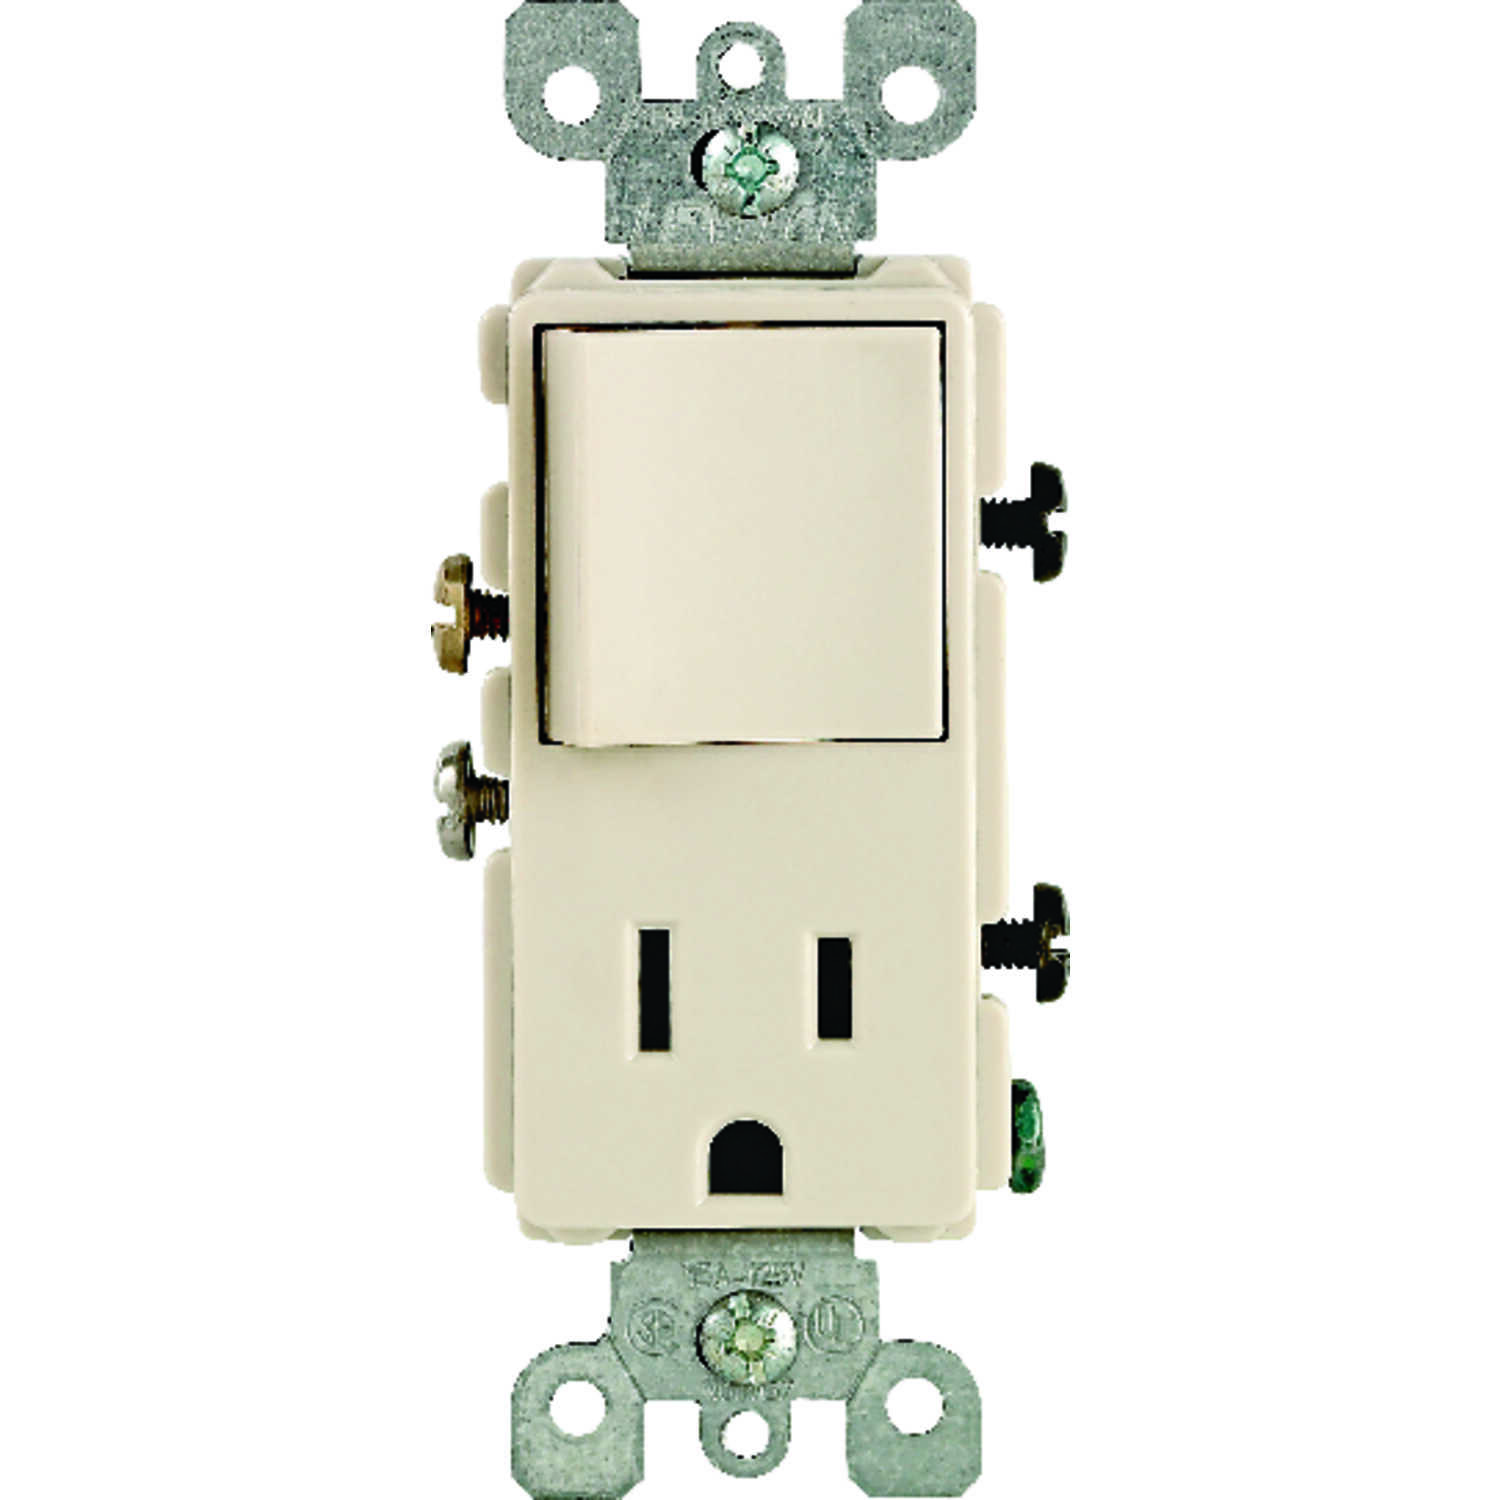 Leviton  Decora  120 volt Light Almond  Combination Outlet  5-15R  1 pk